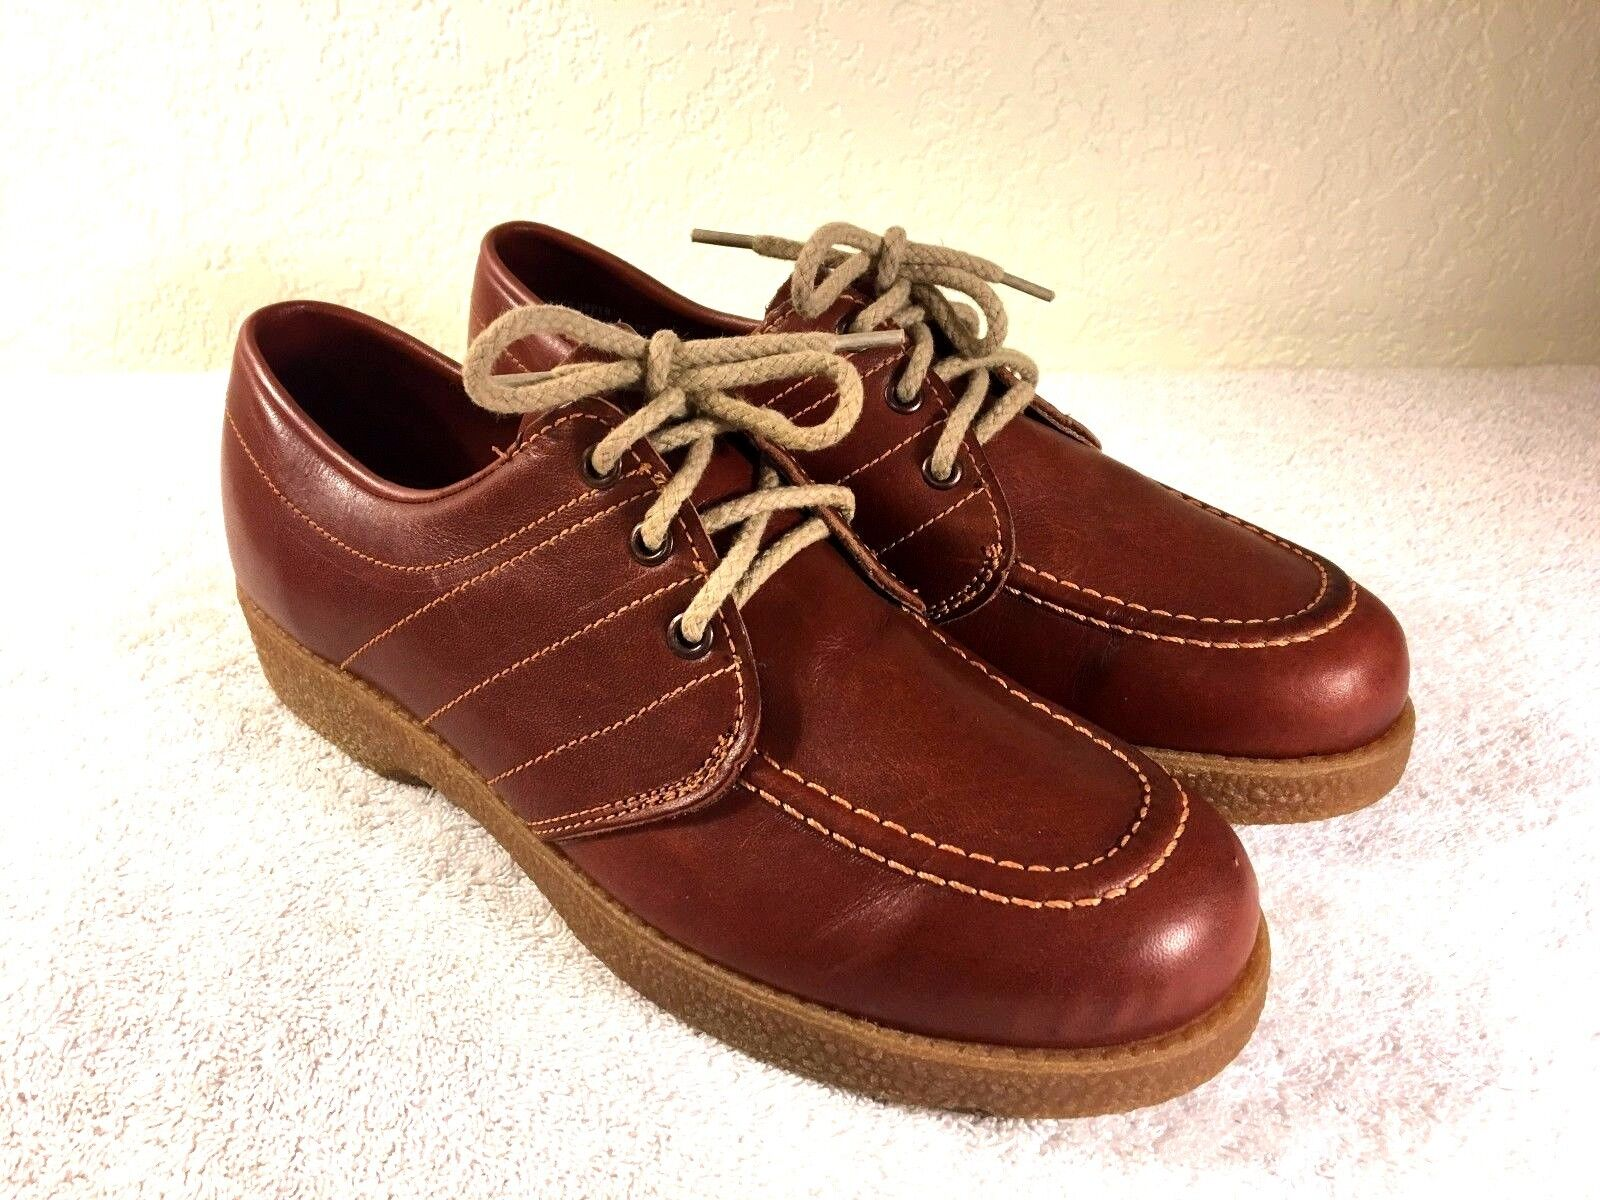 b4dbdfdb860f Sunbacker Vintage made in in in USA men s brown leather shoes size 9 D  Excellent 24f0be